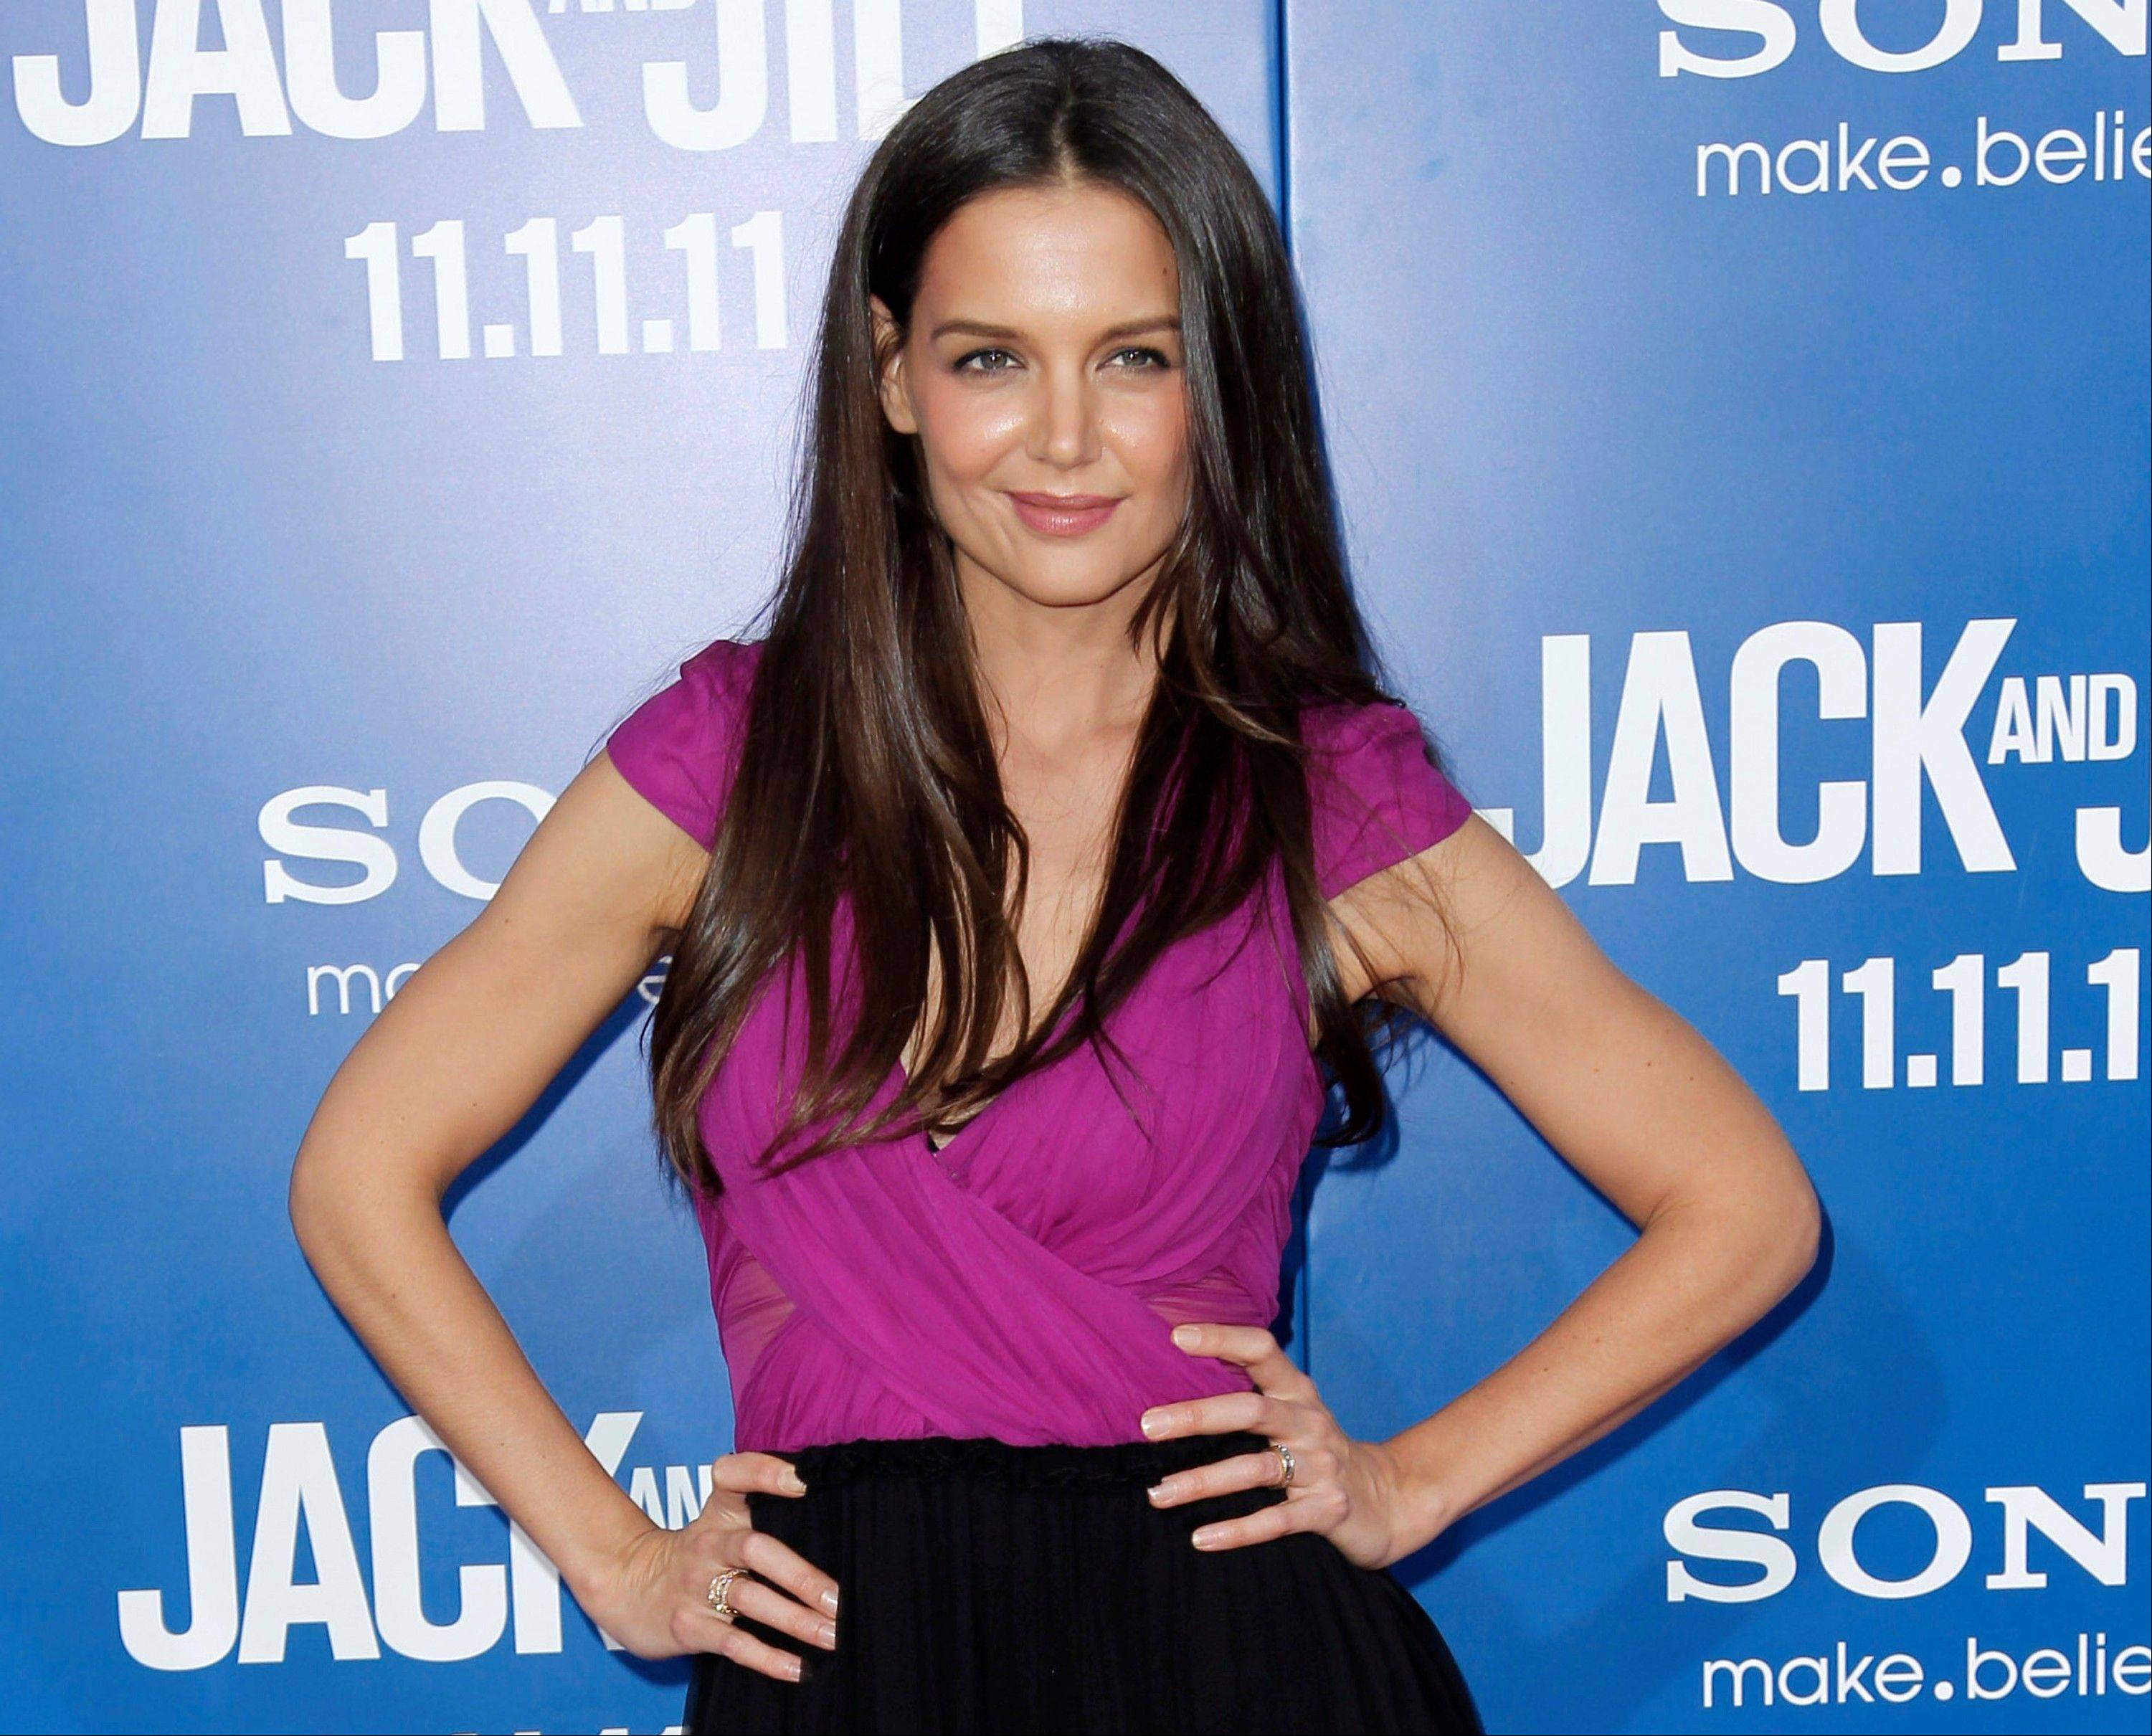 At just 33, actress Katie Holmes is emerging from the public hysteria regarding her relationship and divorce from actor Tom Cruise.